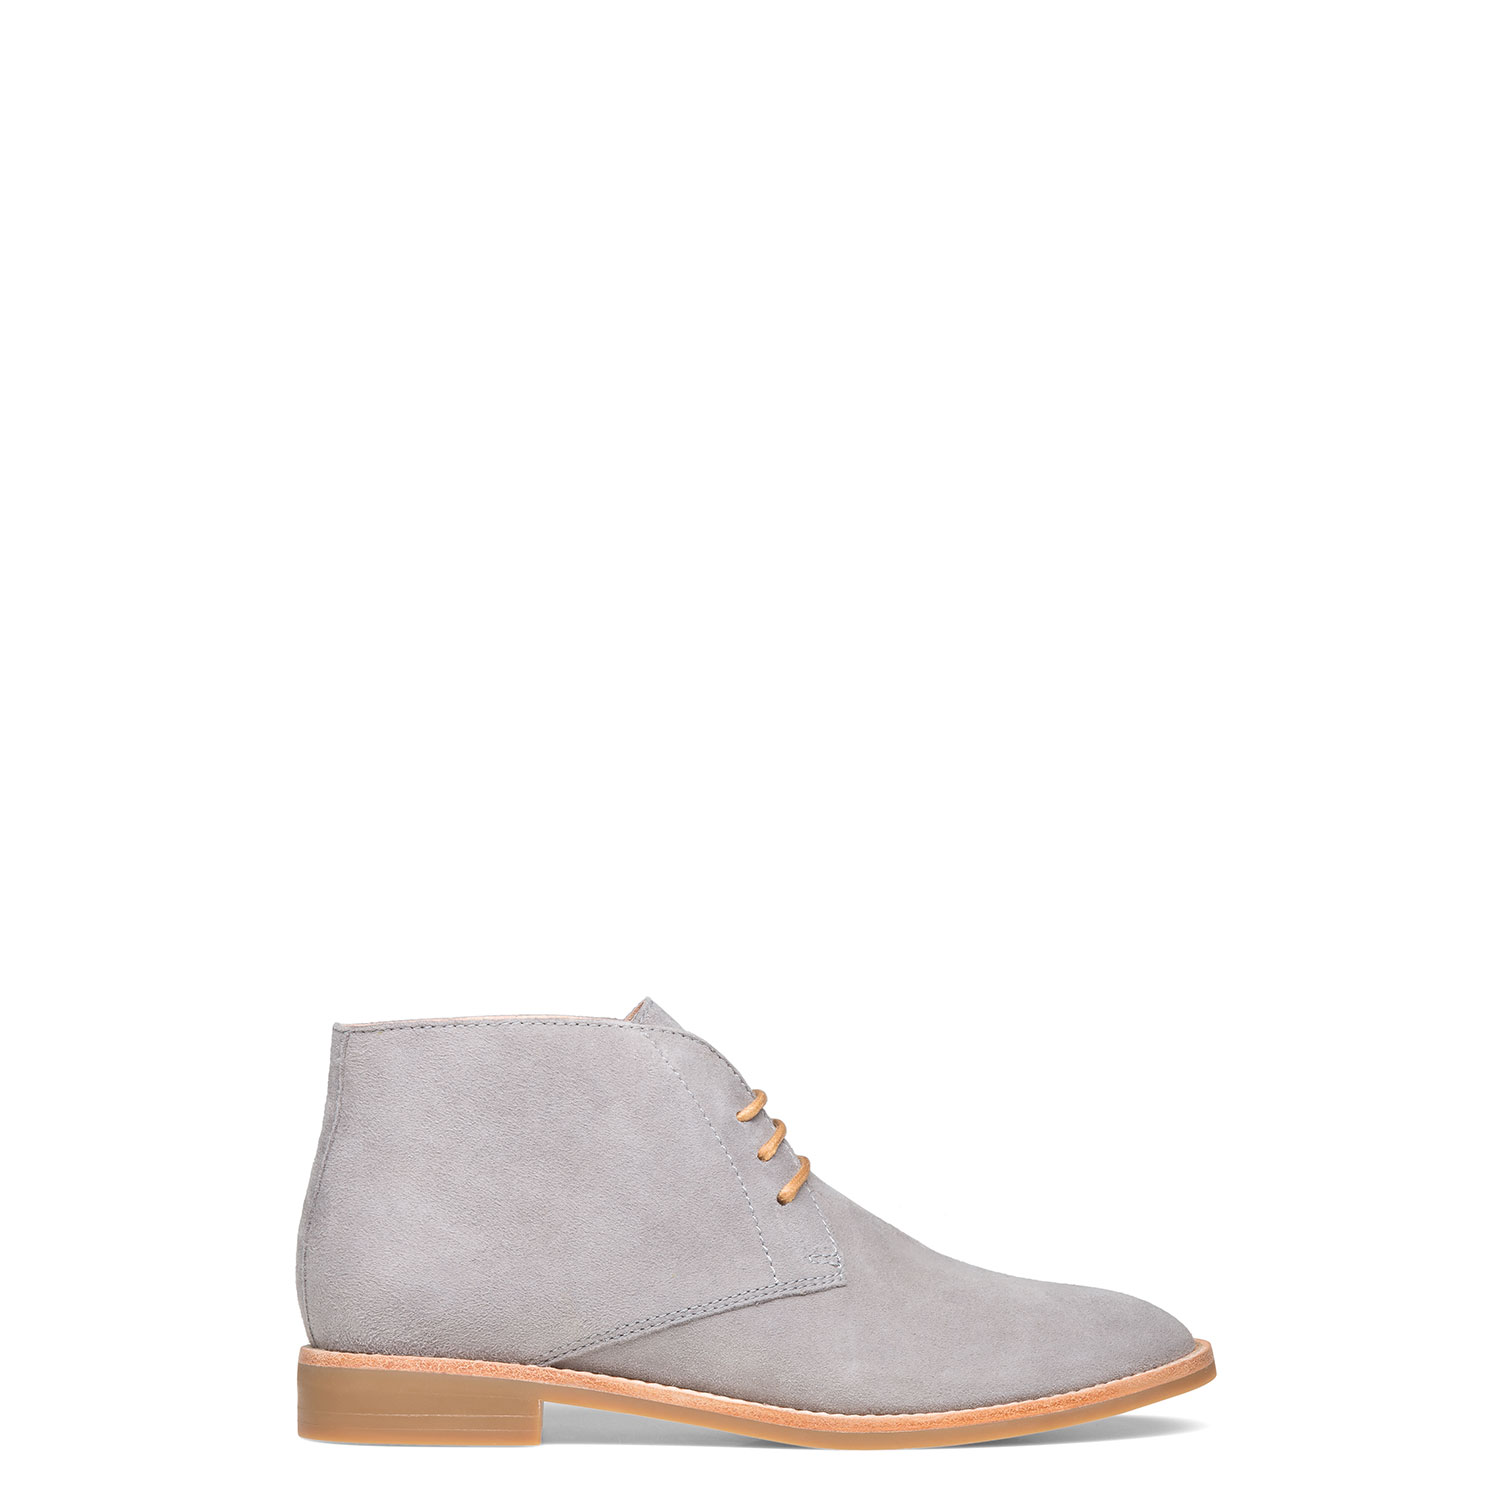 Women's ankle boots CARLO PAZOLINI FG-DEE1-10